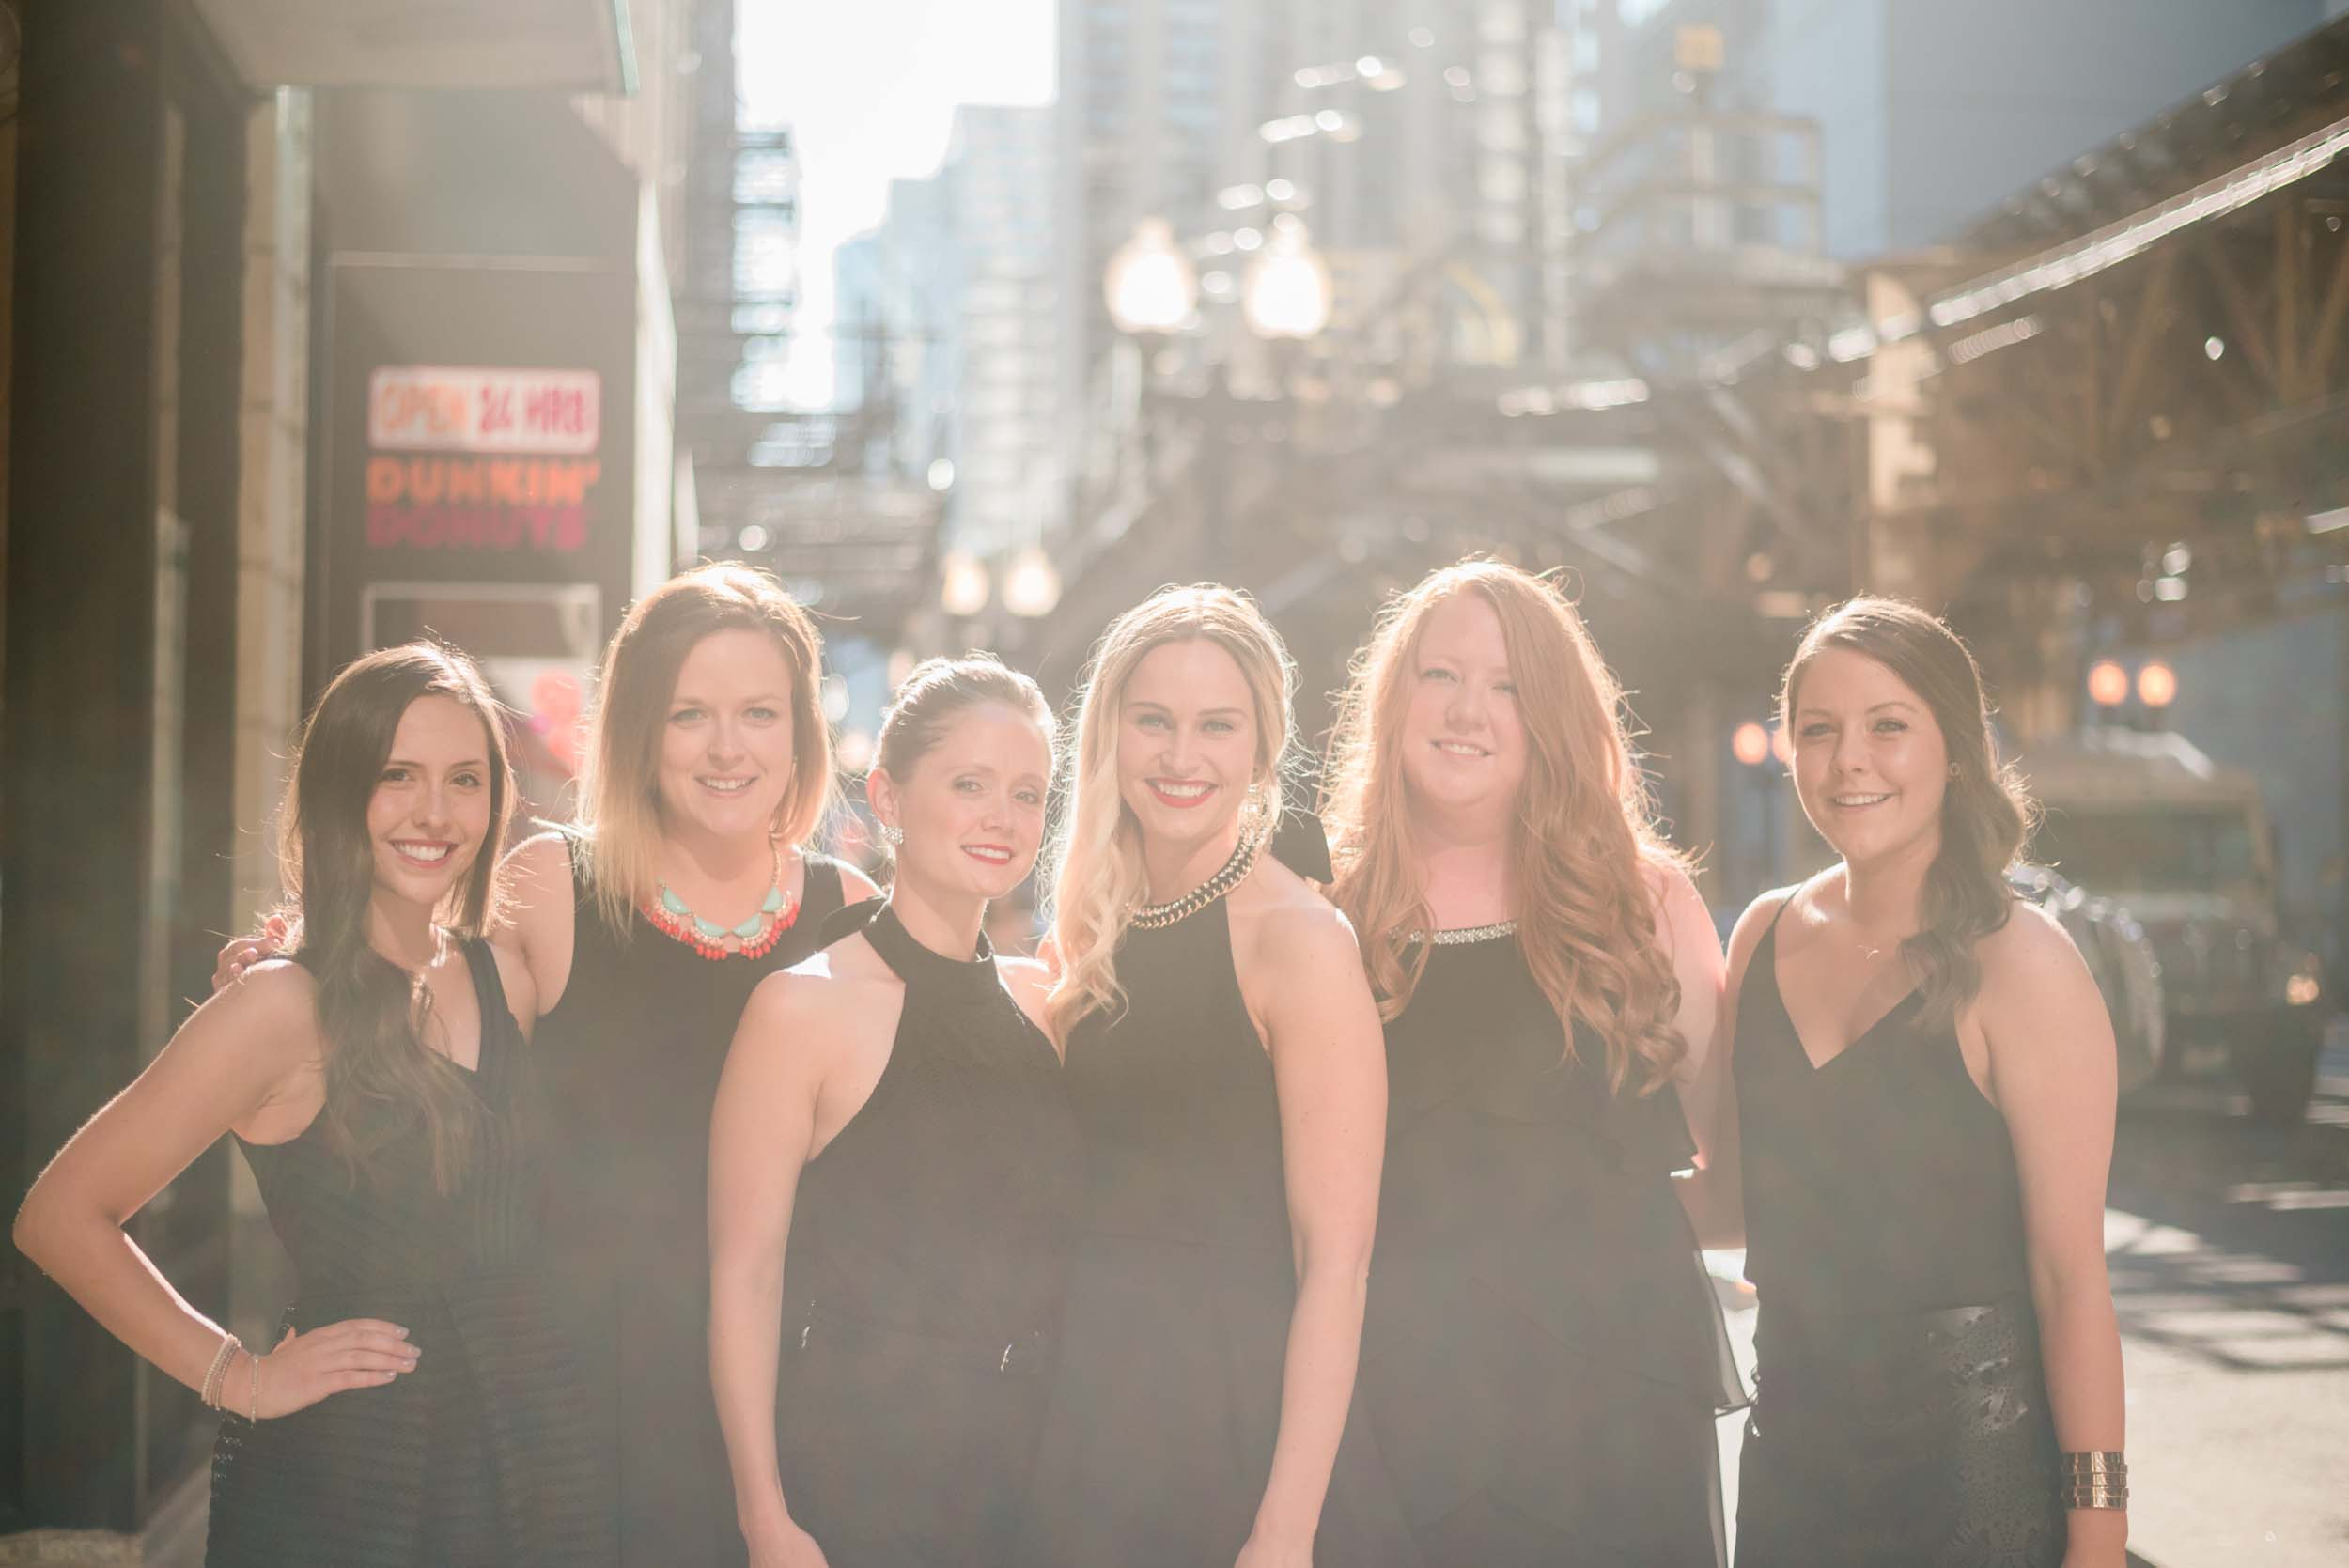 Six female friends standing together smiling on a bachelorette trip in Chicago, USA